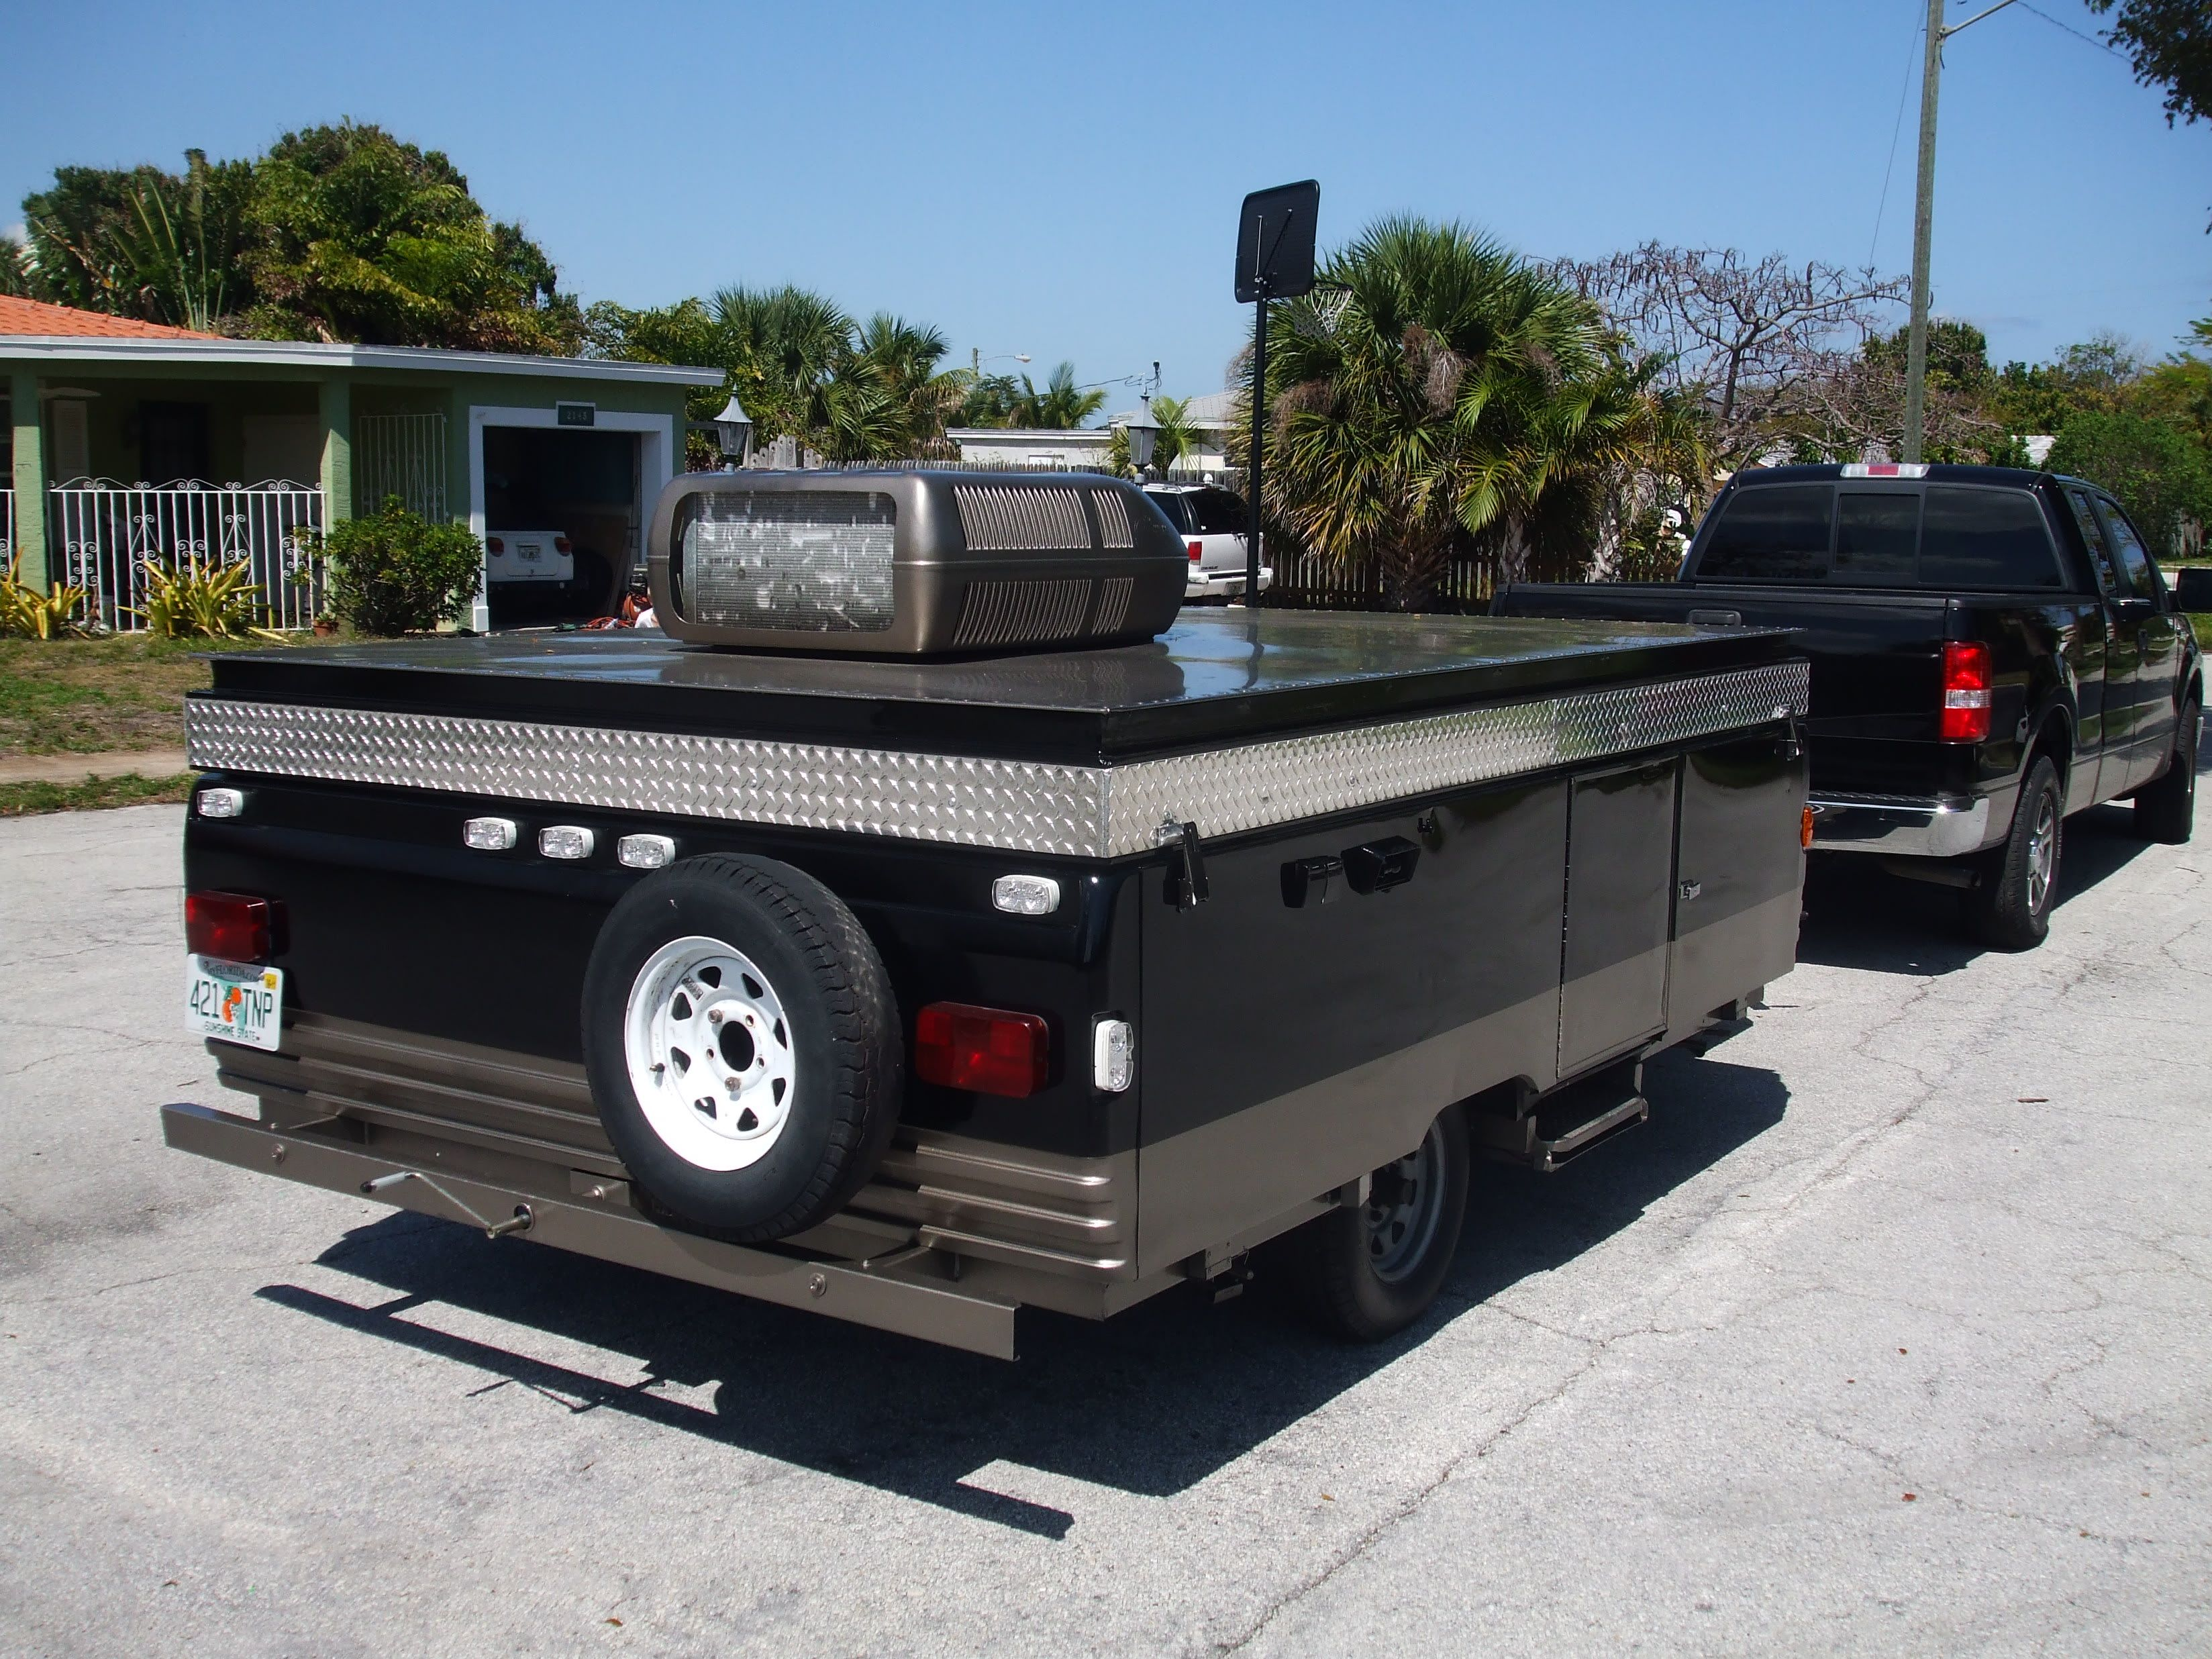 Anthony Findley uploaded this image to 'camper/put all back